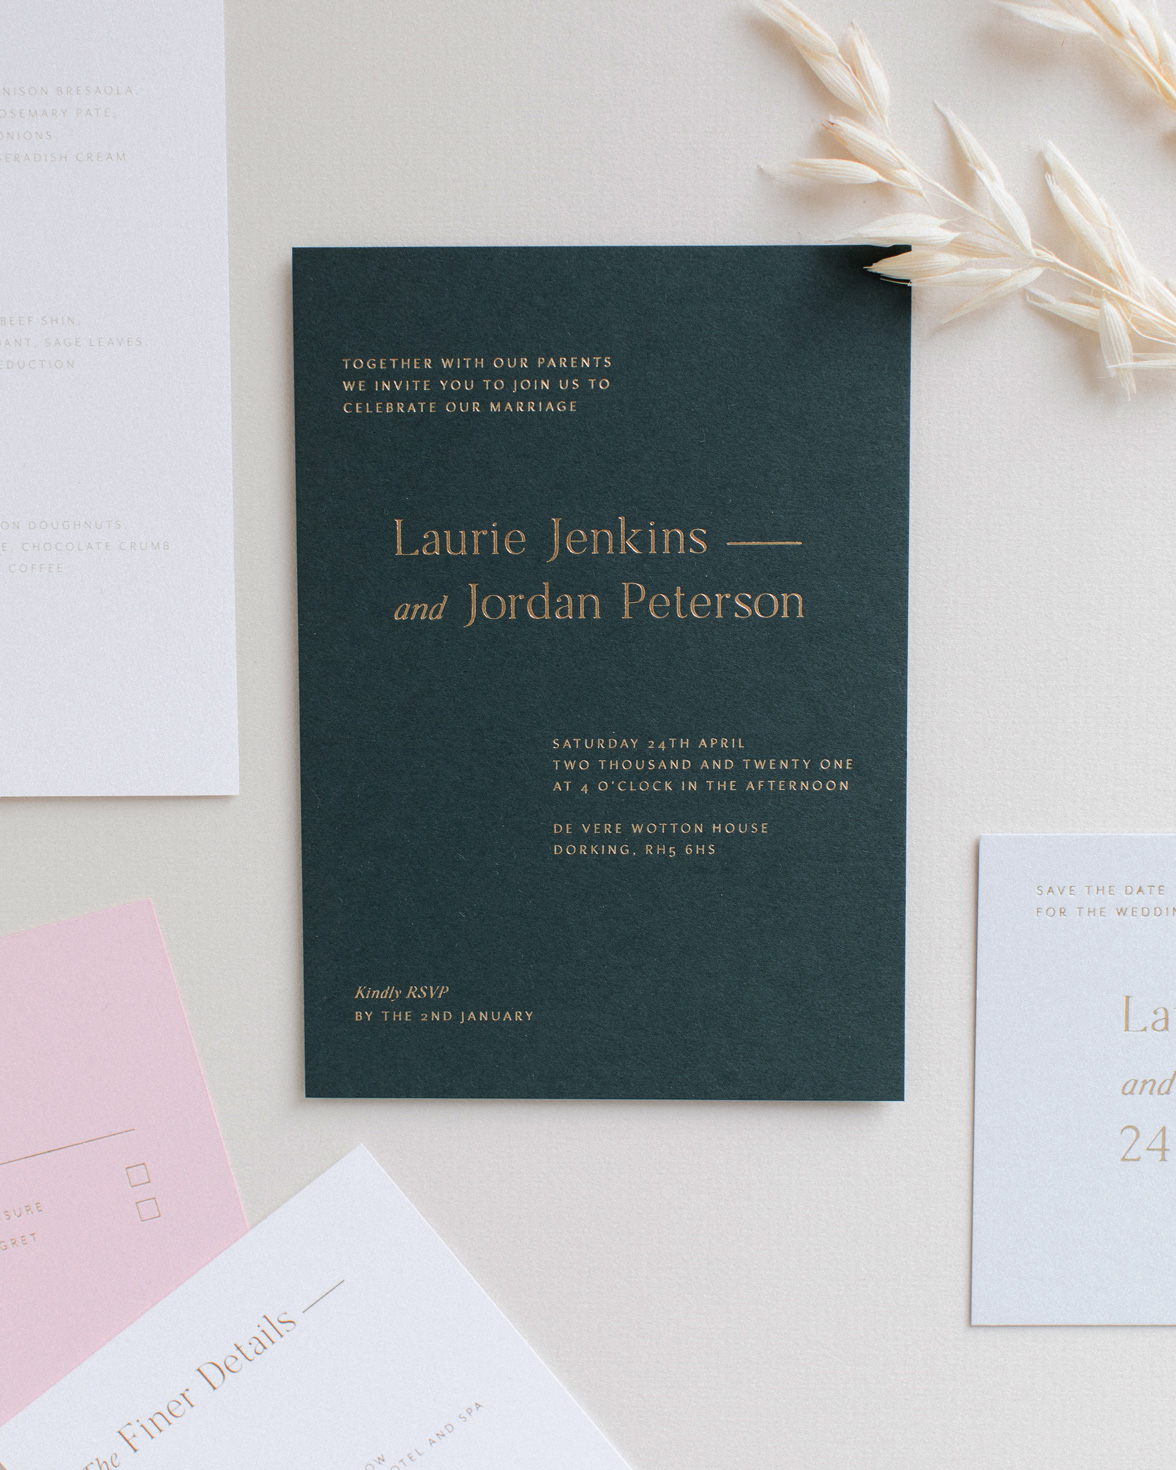 Refined gold wedding invitation in racing green with gold foil print